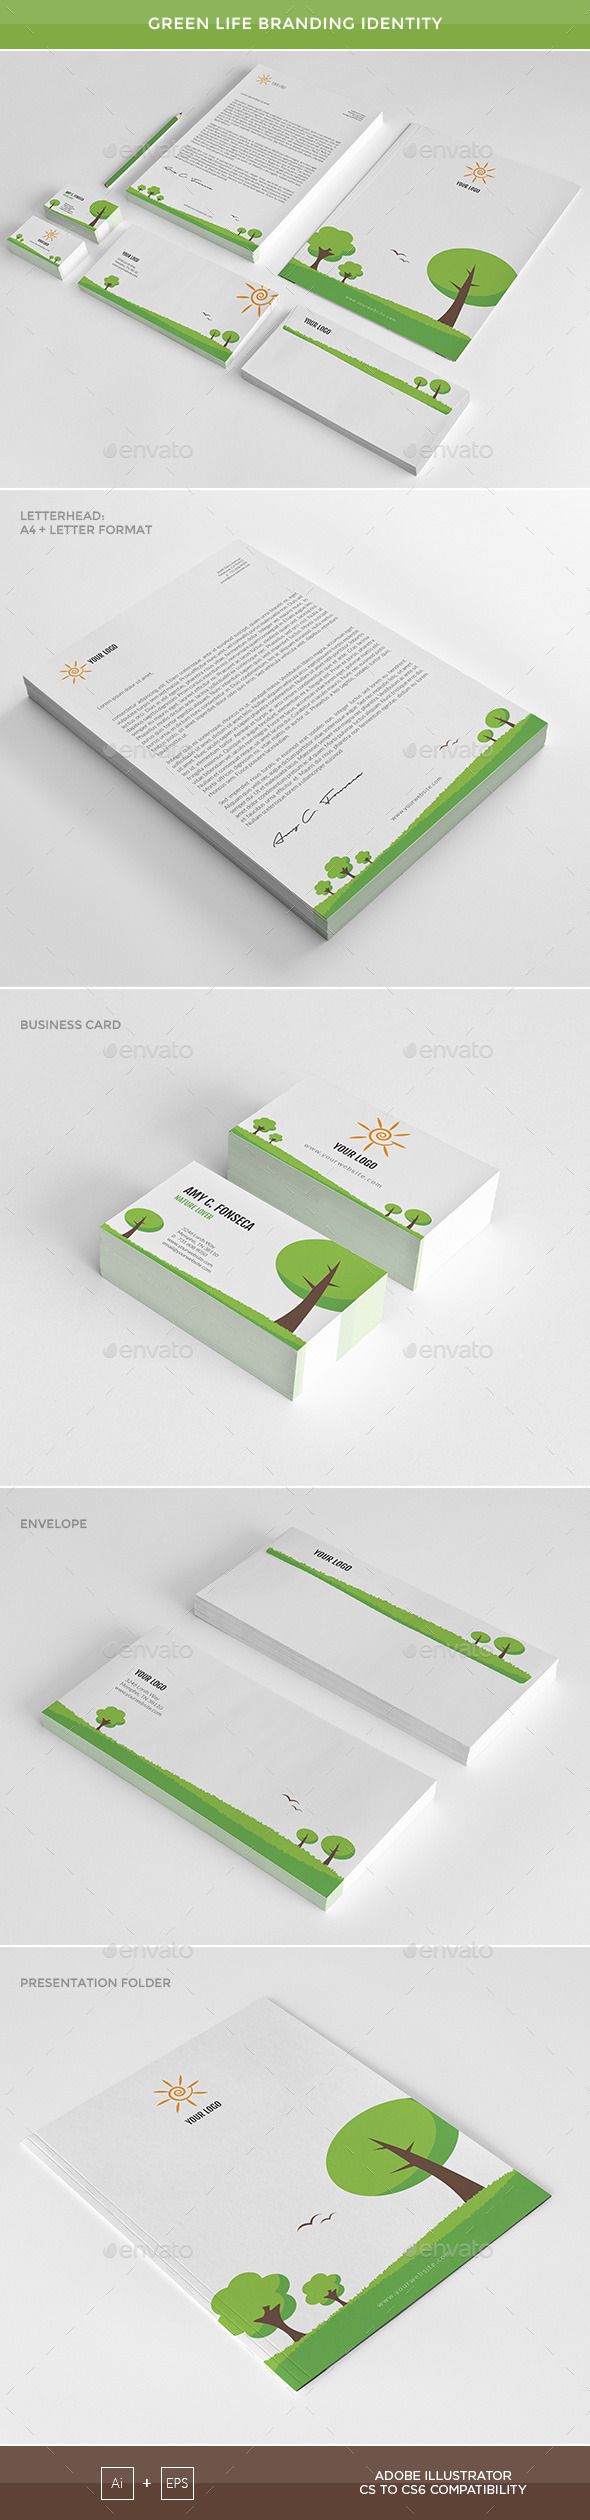 GraphicRiver Green Life Branding Identity 11776575